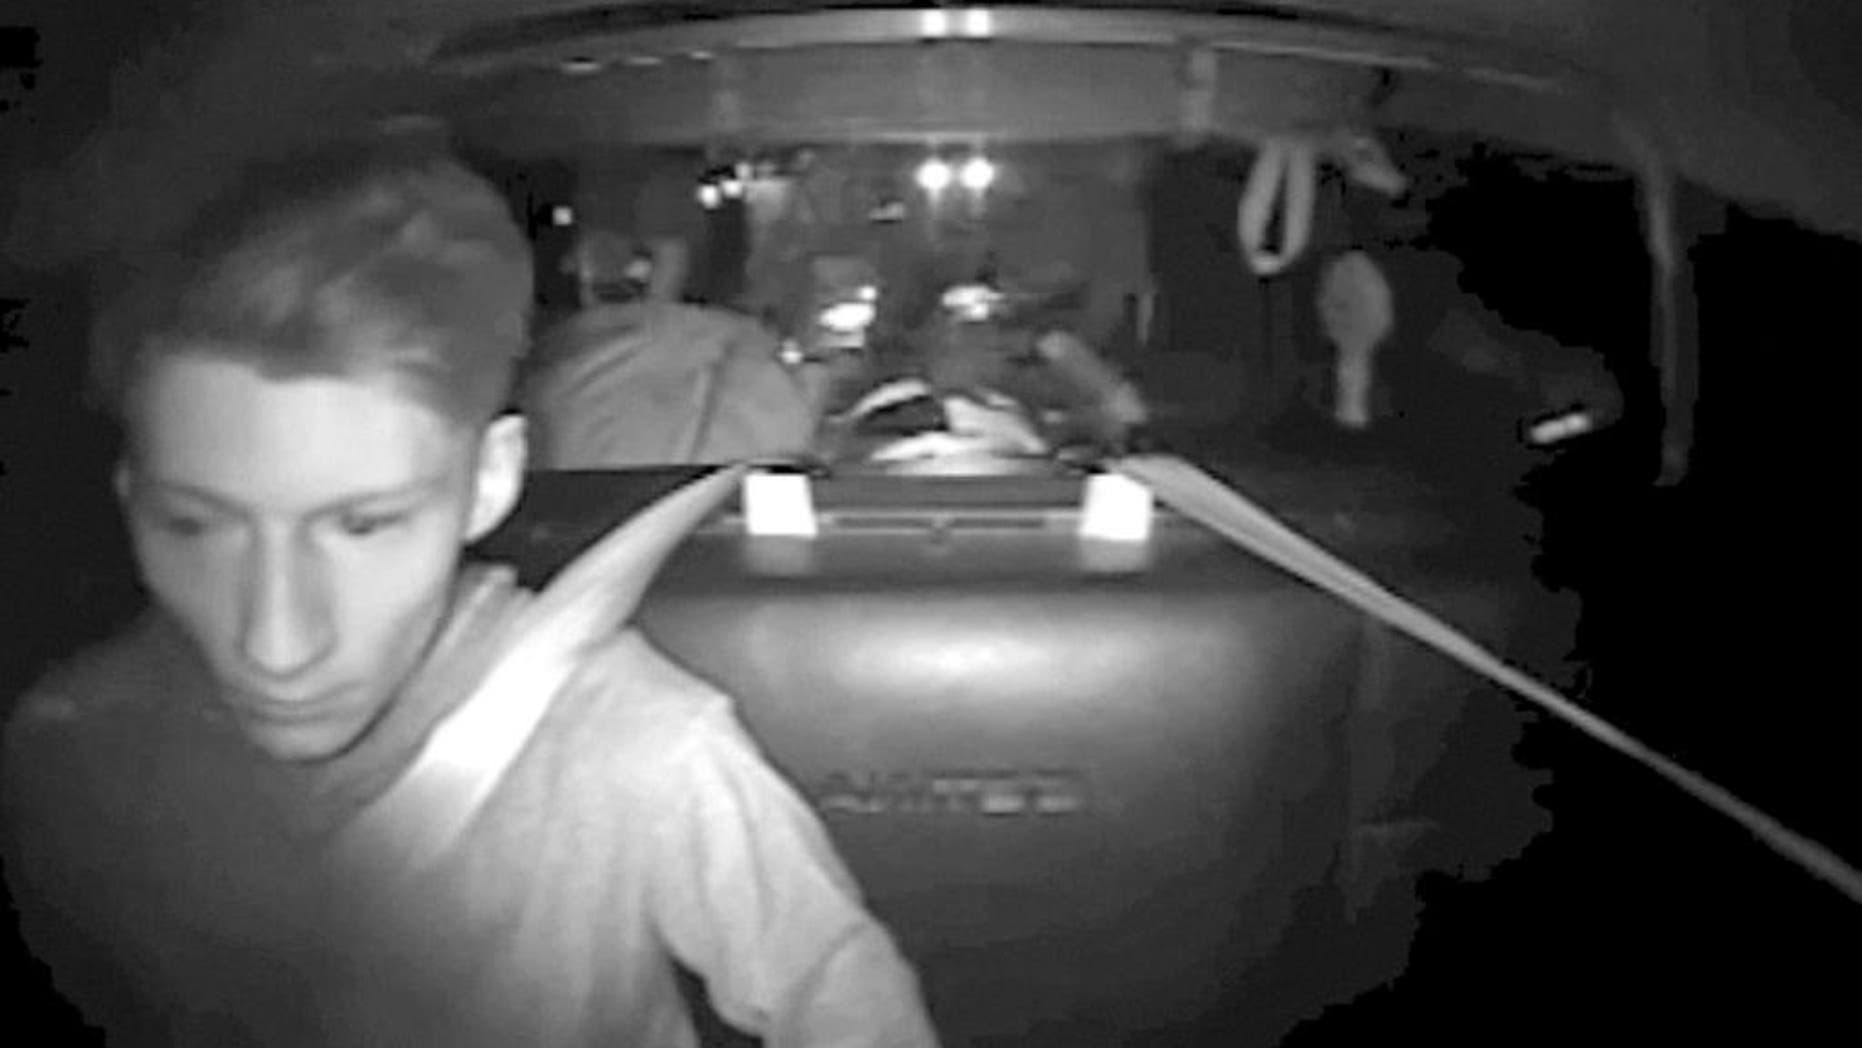 """This July 30, 2016, image made from a video provided by Washington State Patrol via The Daily Herald shows Allen Ivanov in the back of a patrol car in a police camera video shortly after his arrest on Interstate 5 in Lewis County, Wash. Court documents say Ivanov, a 19-year-old man accused of fatally shooting three teenagers at a house party in Mukilteo last month, sent his friends text messages alluding to his plans, including one in which he wrote: """"I'm killing everyone at a huge party."""" (Washington State Patrol via The Daily Herald via AP)"""